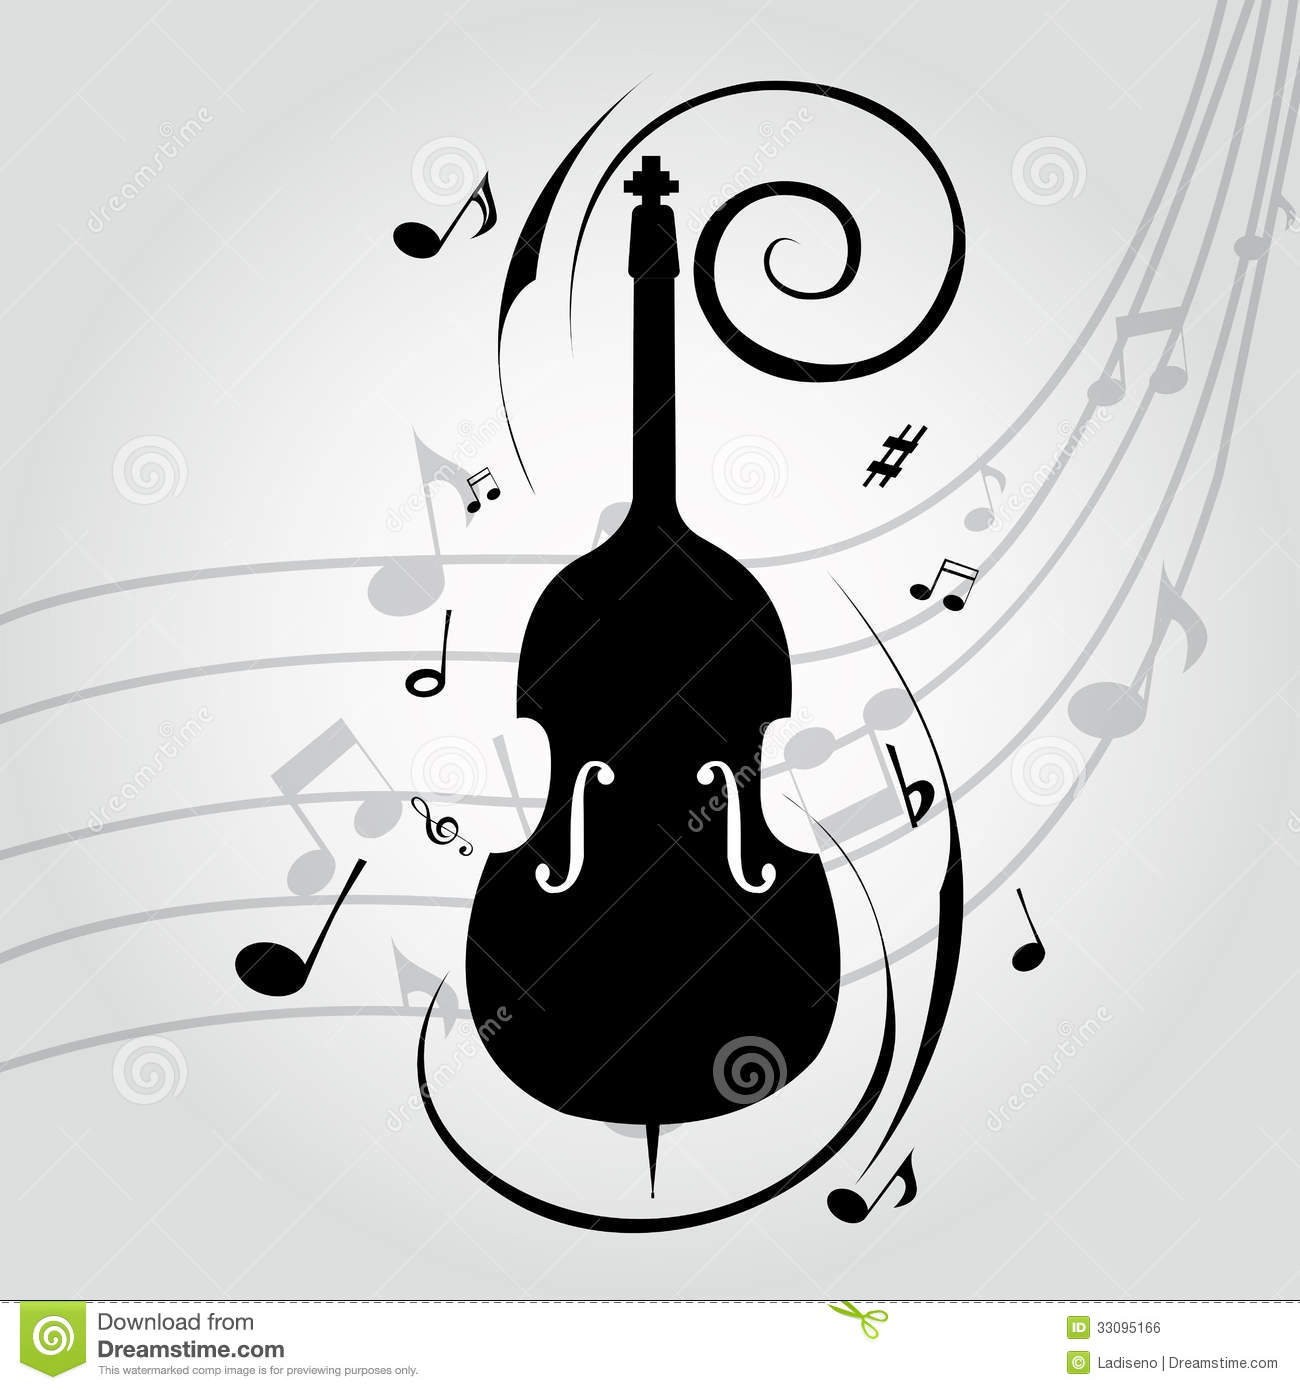 how to read cello music